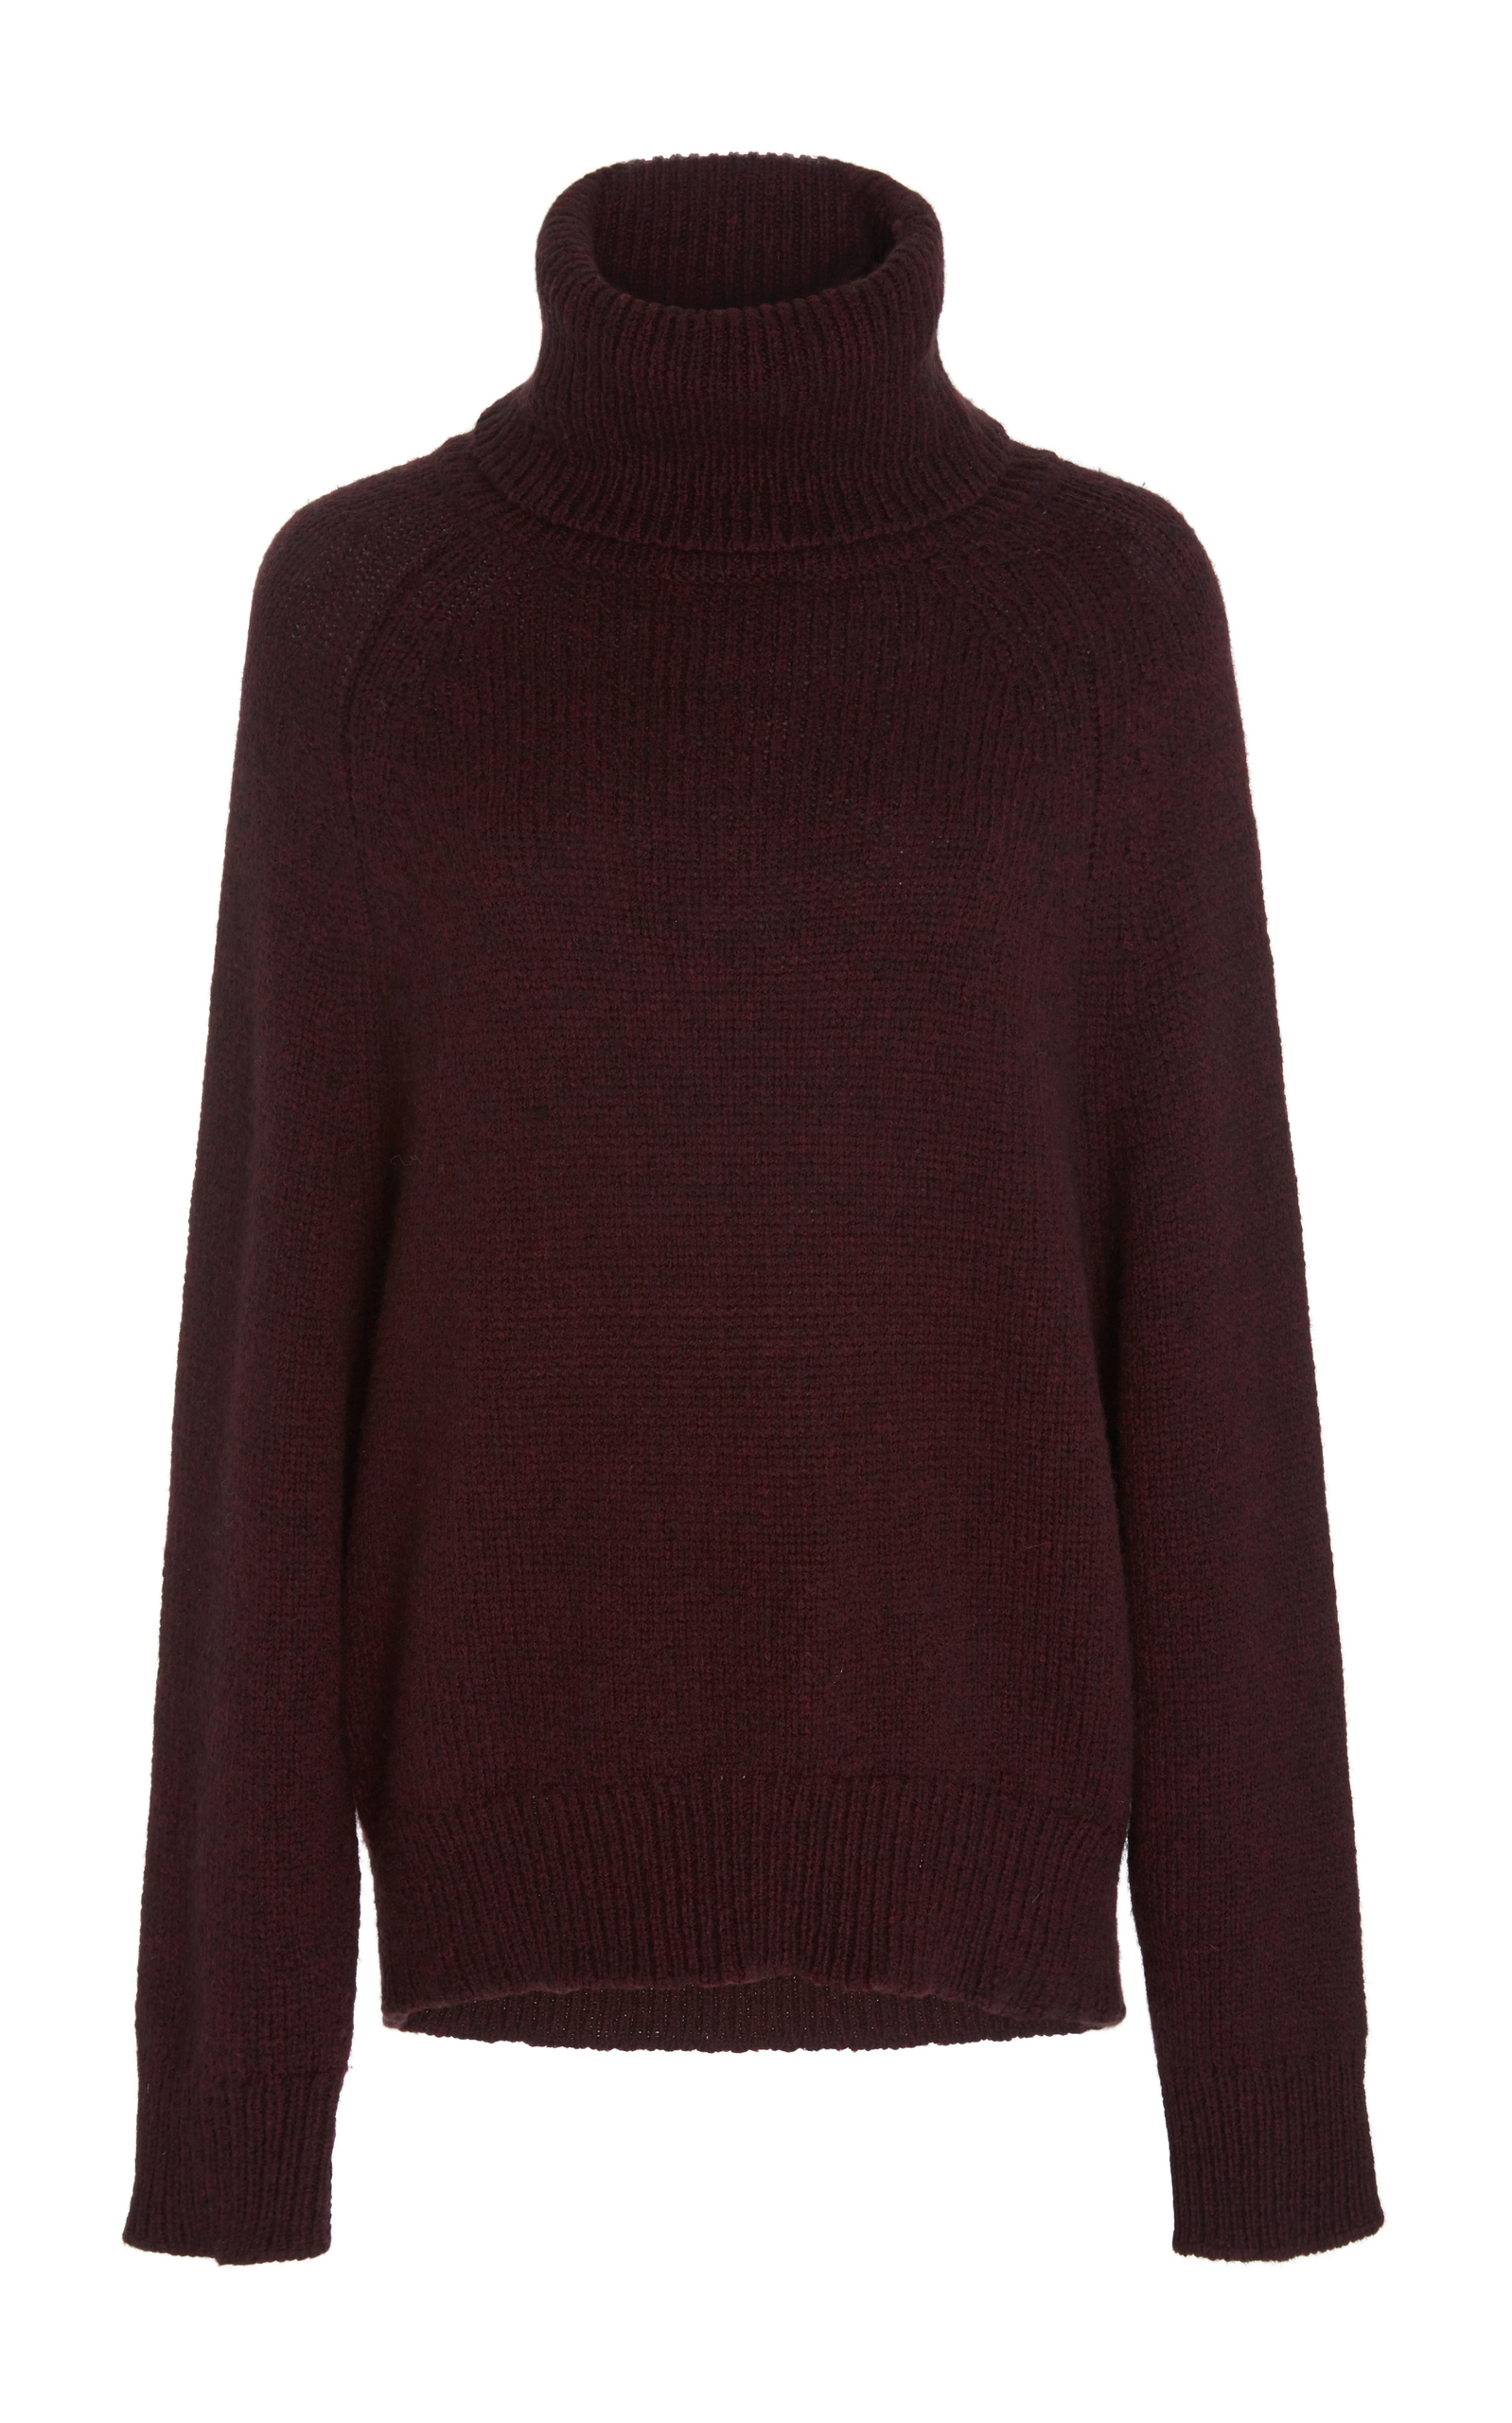 Louche and oversized, this Nili Lotan sweater answers my call for comfort. Super cool with leather trousers and easy for the weekend with casual jeans. I love the richness of this colour and the ribbed stitch details.